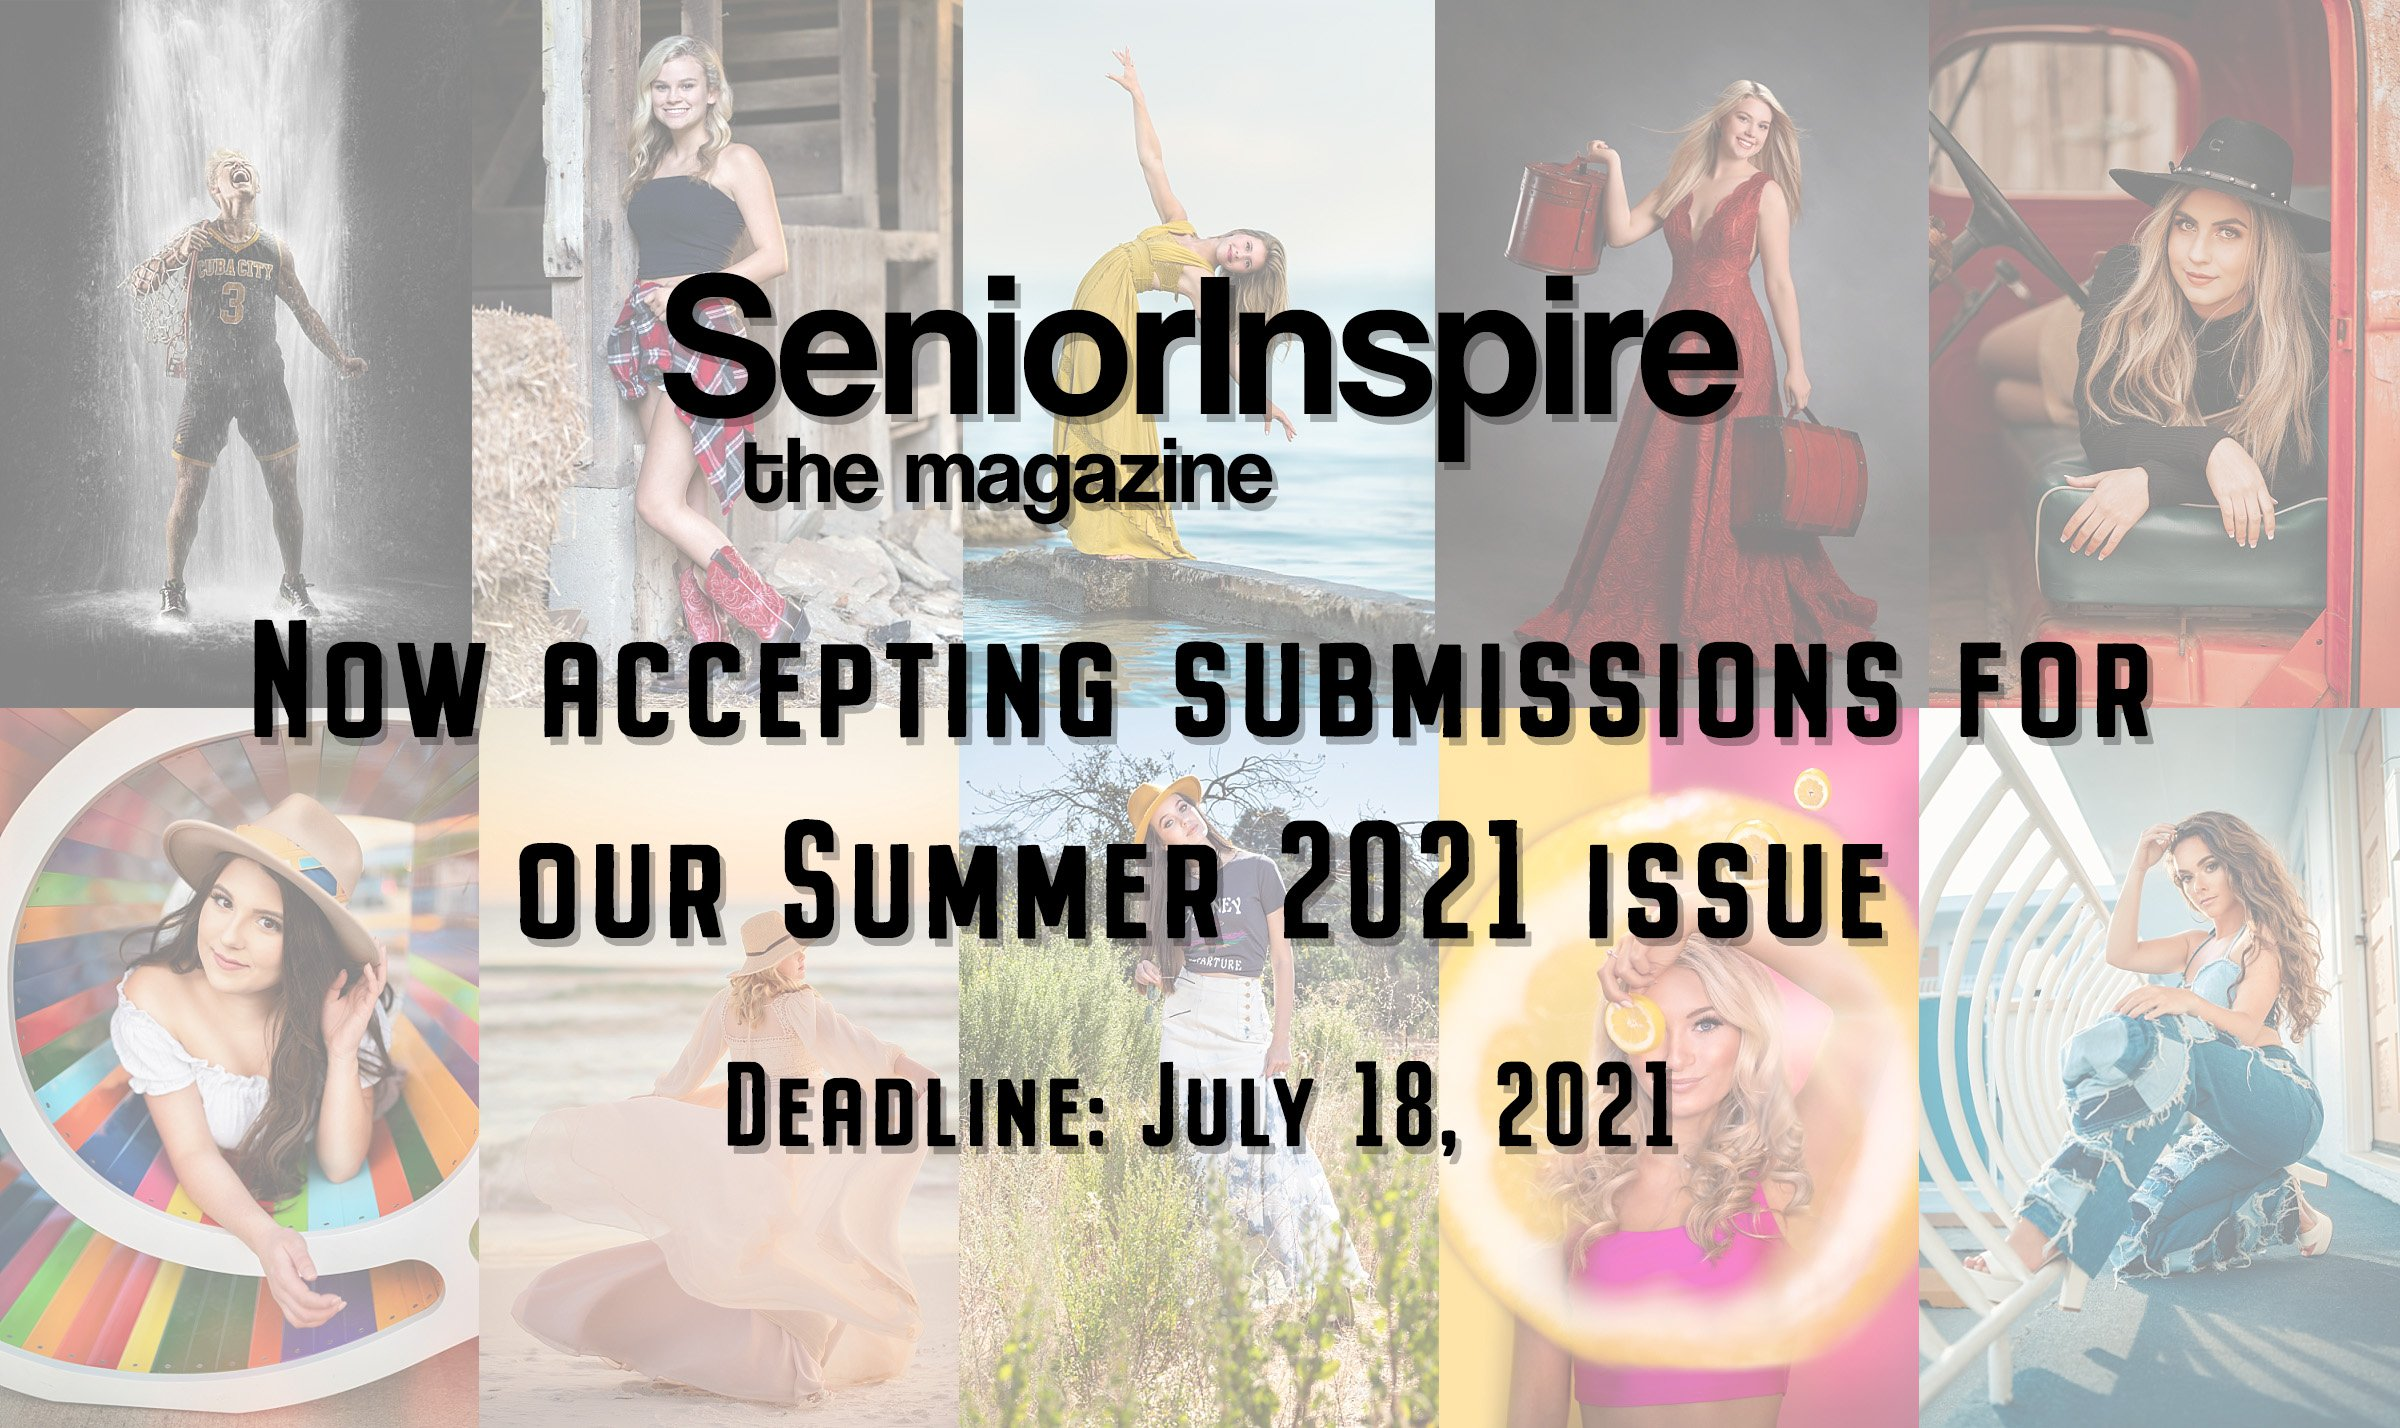 SeniorInspire the magazine – now accepting submissions for our summer 2021 issue